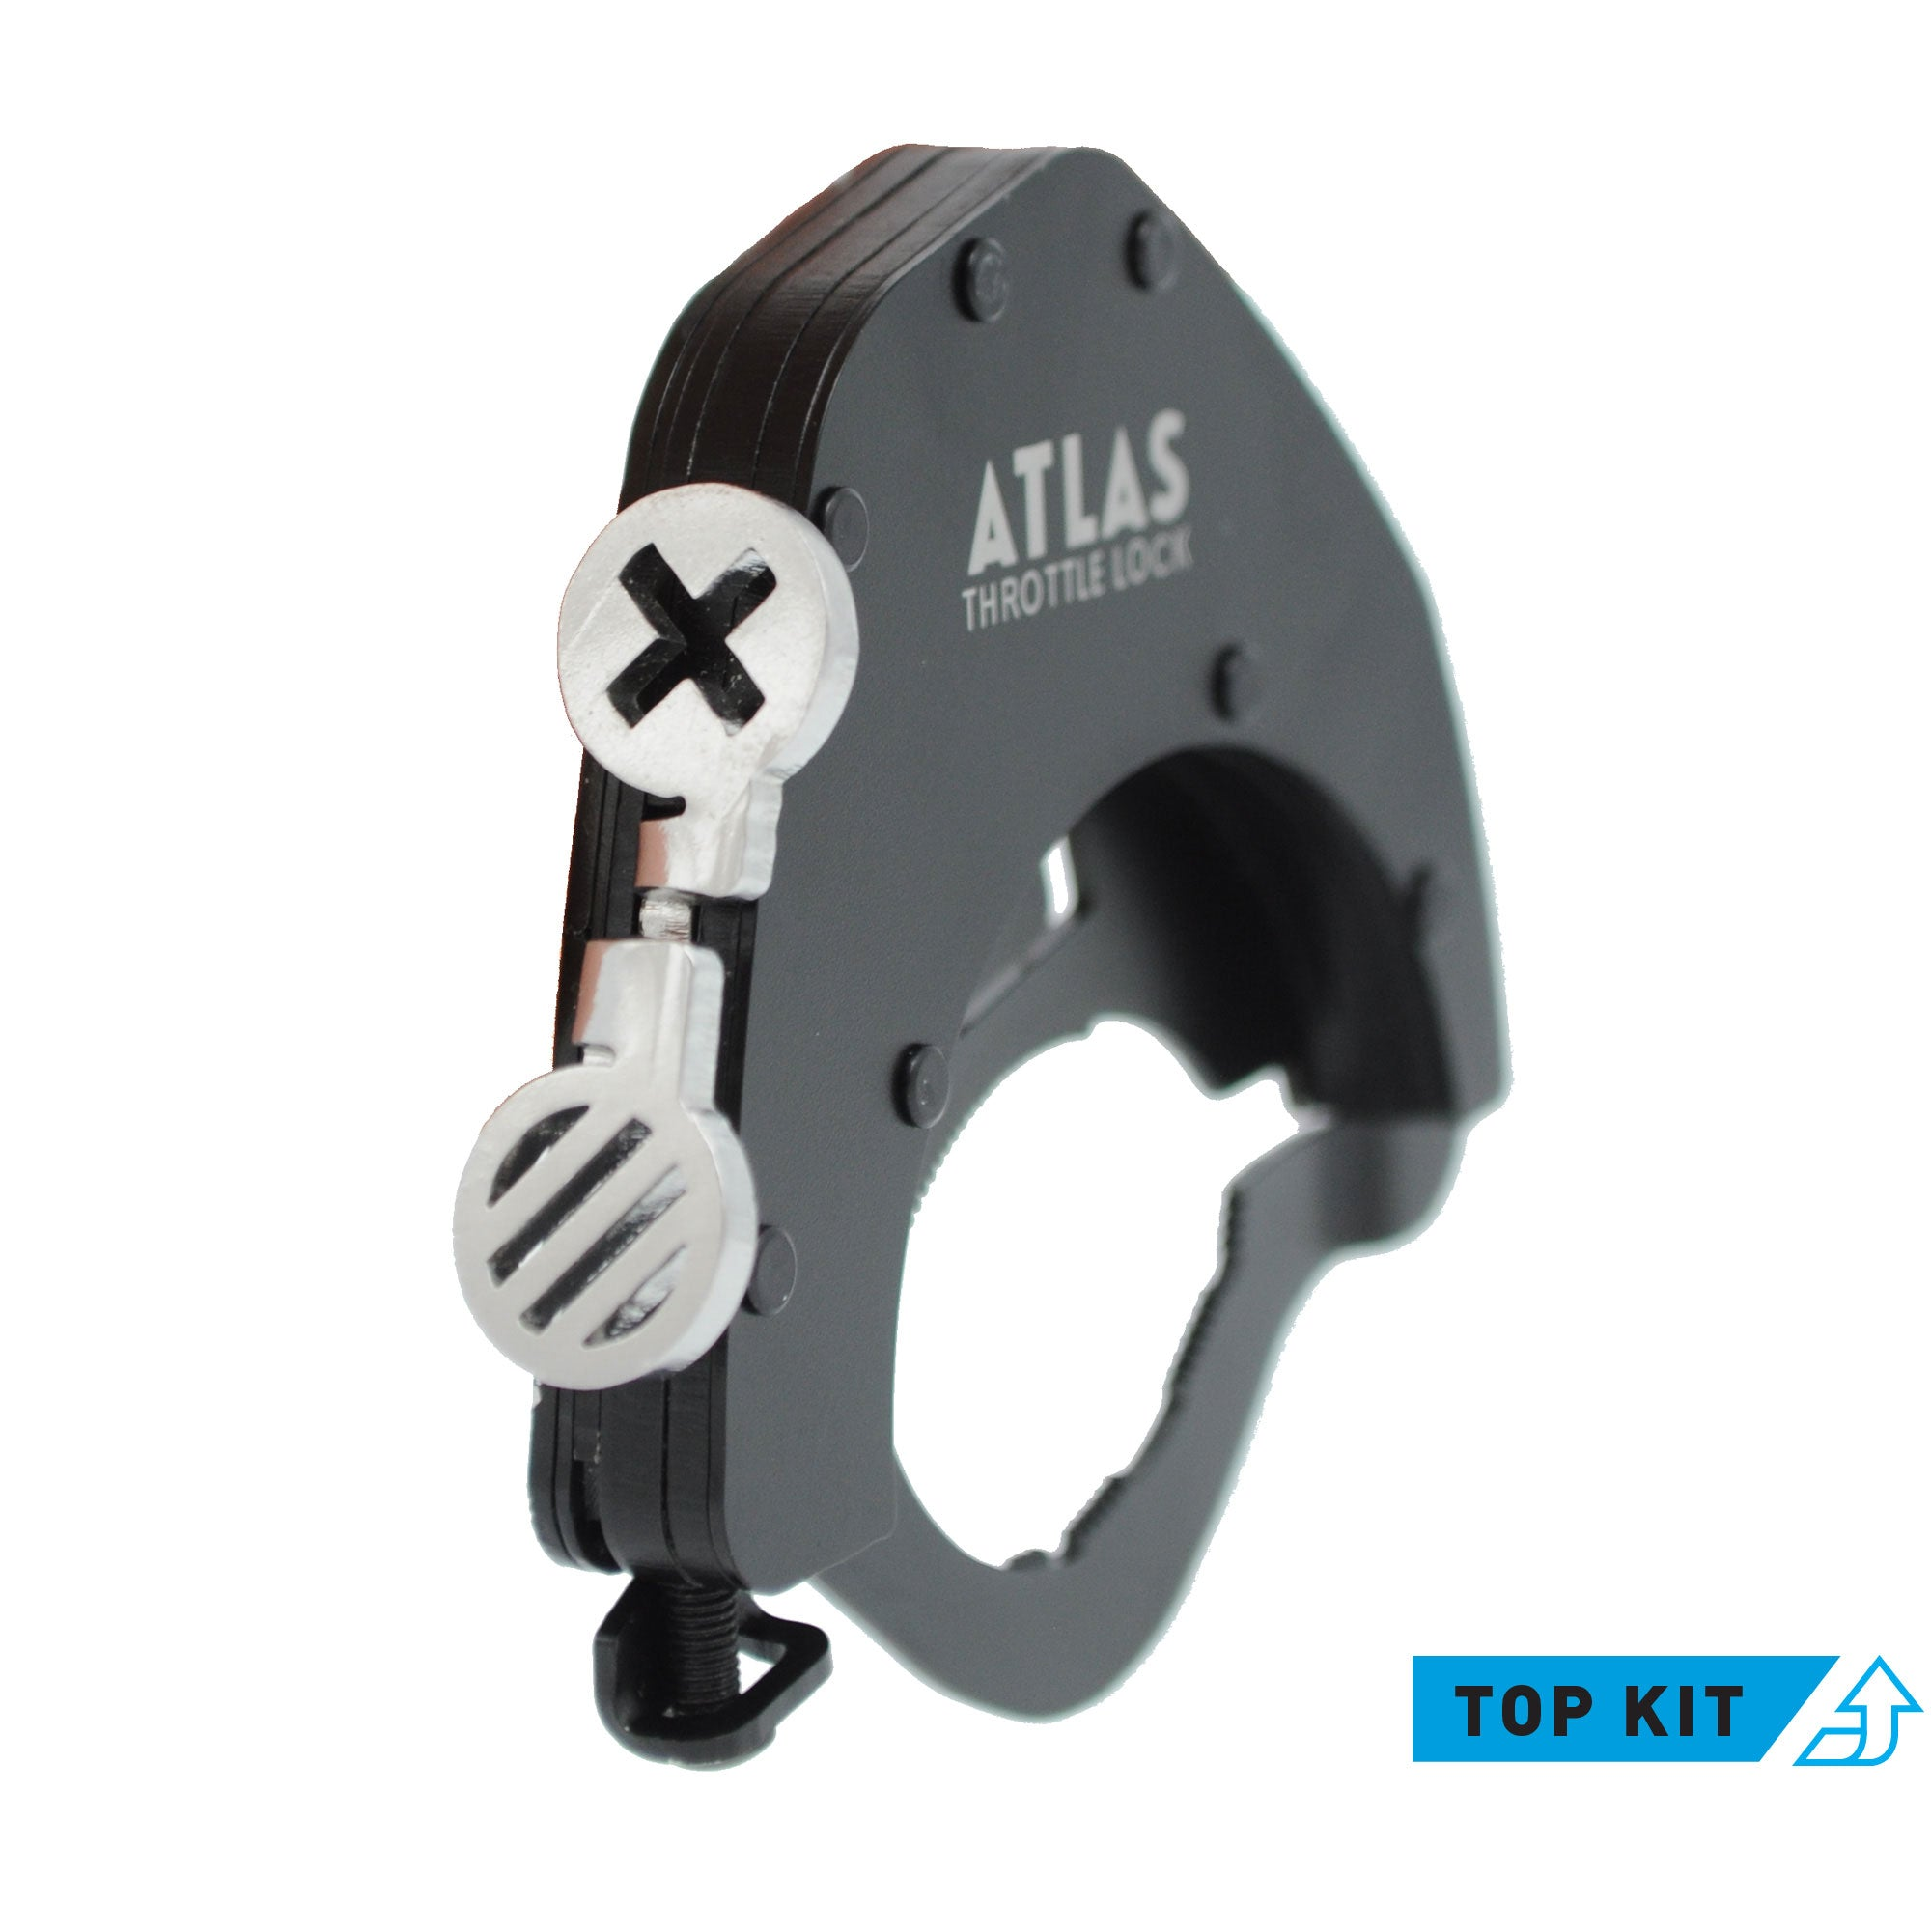 Quadro Motorcycles - ATLAS Throttle Lock